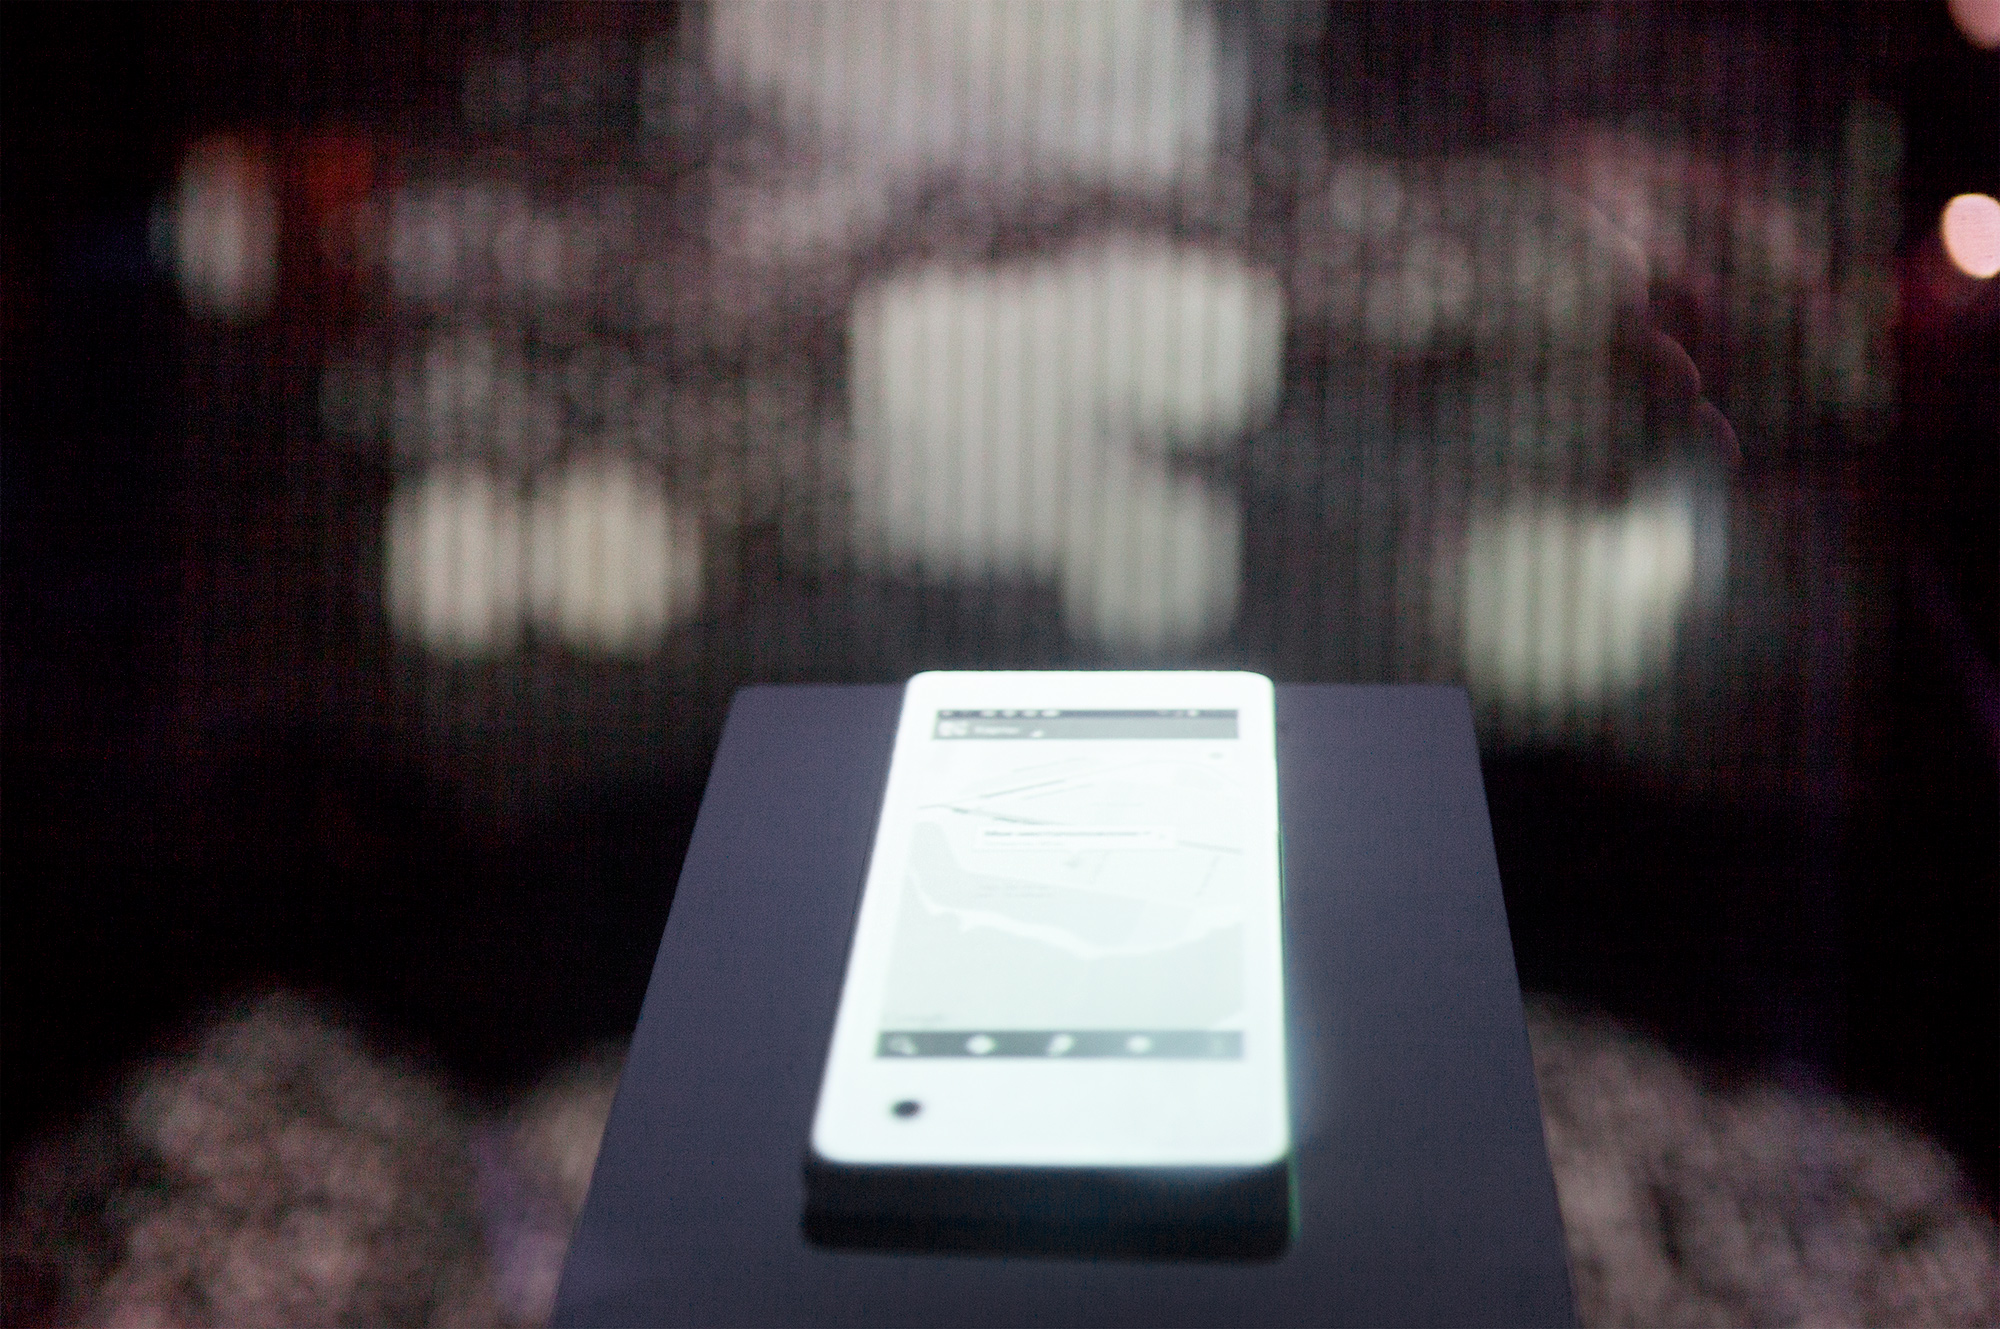 Detail of the installation for Yota Devices featuring their dual-screen phone.